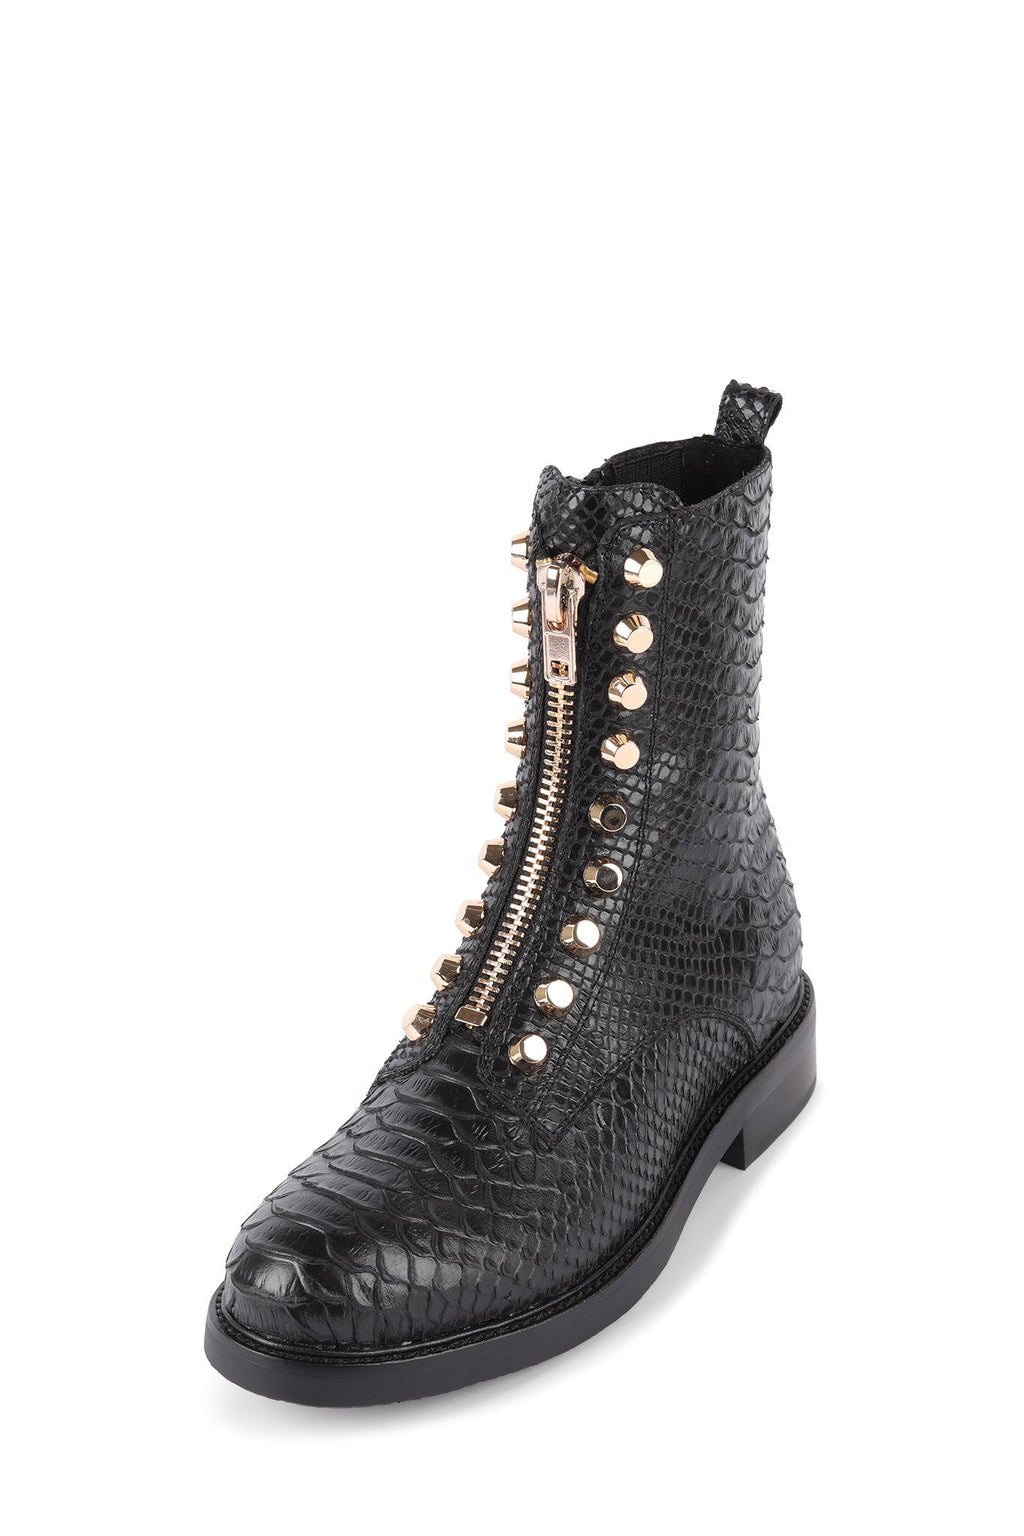 TONETTE Heeled Bootie YYH